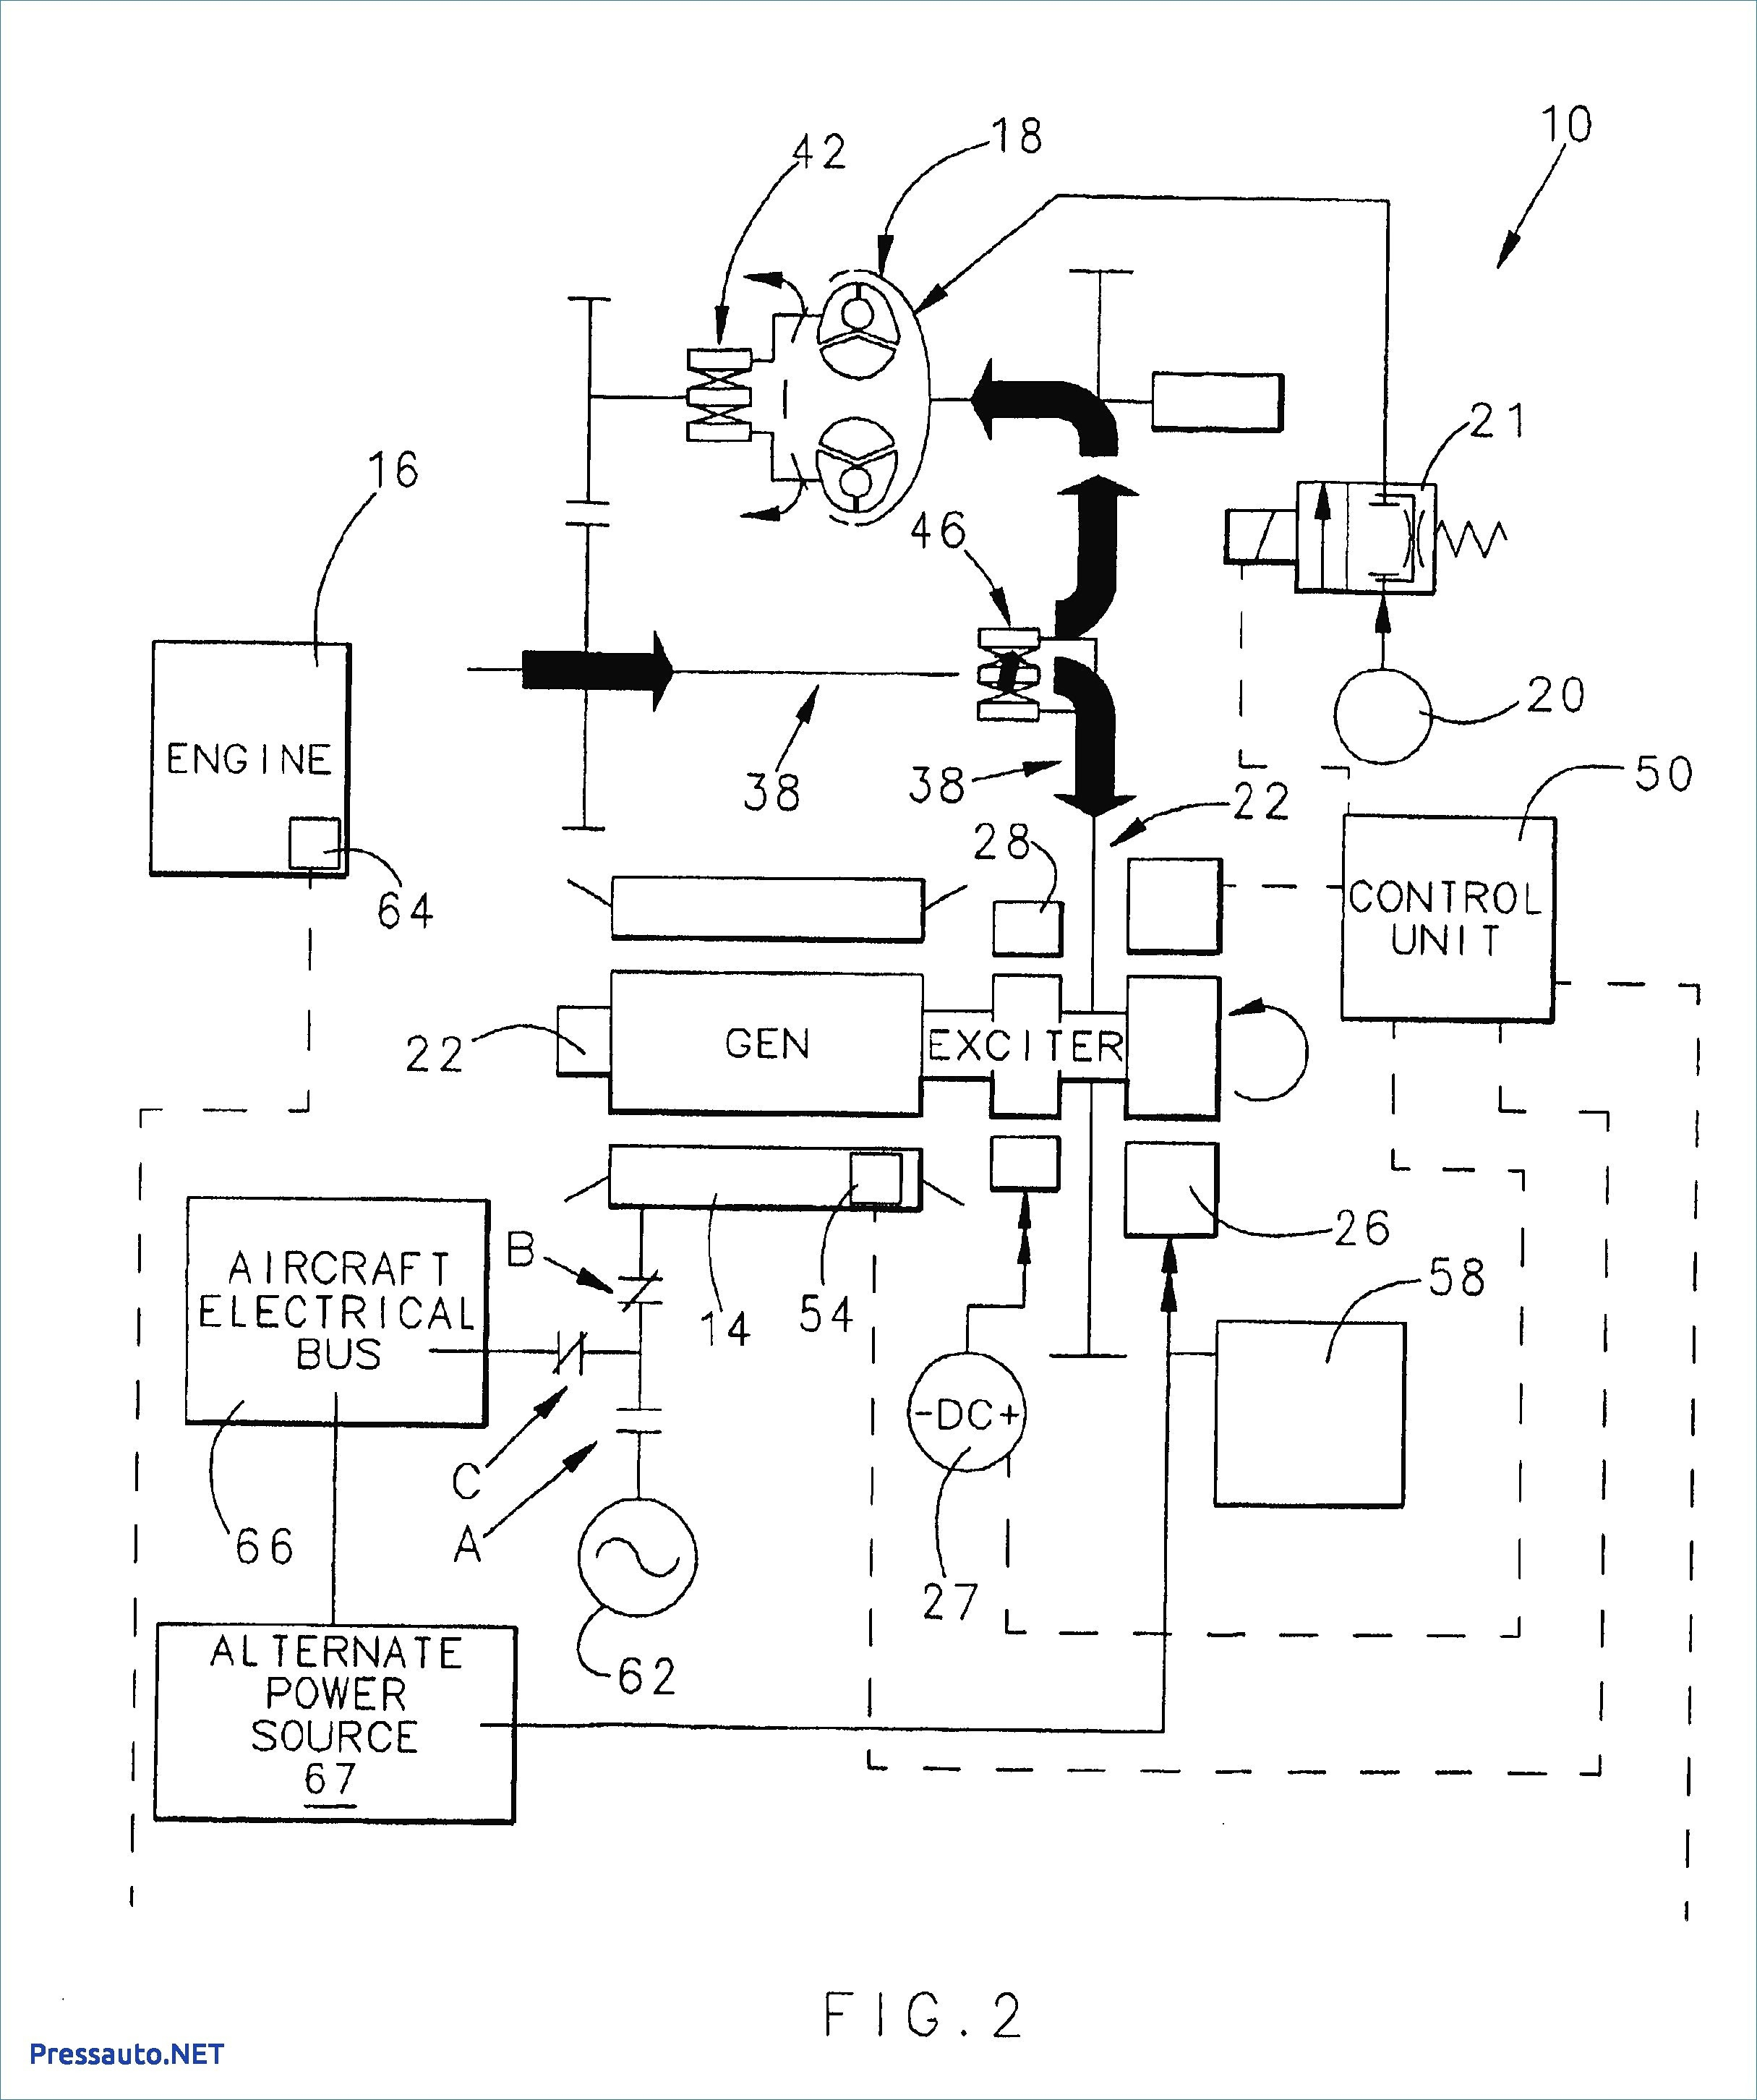 Mercede Bosch Alternator Wiring Diagram